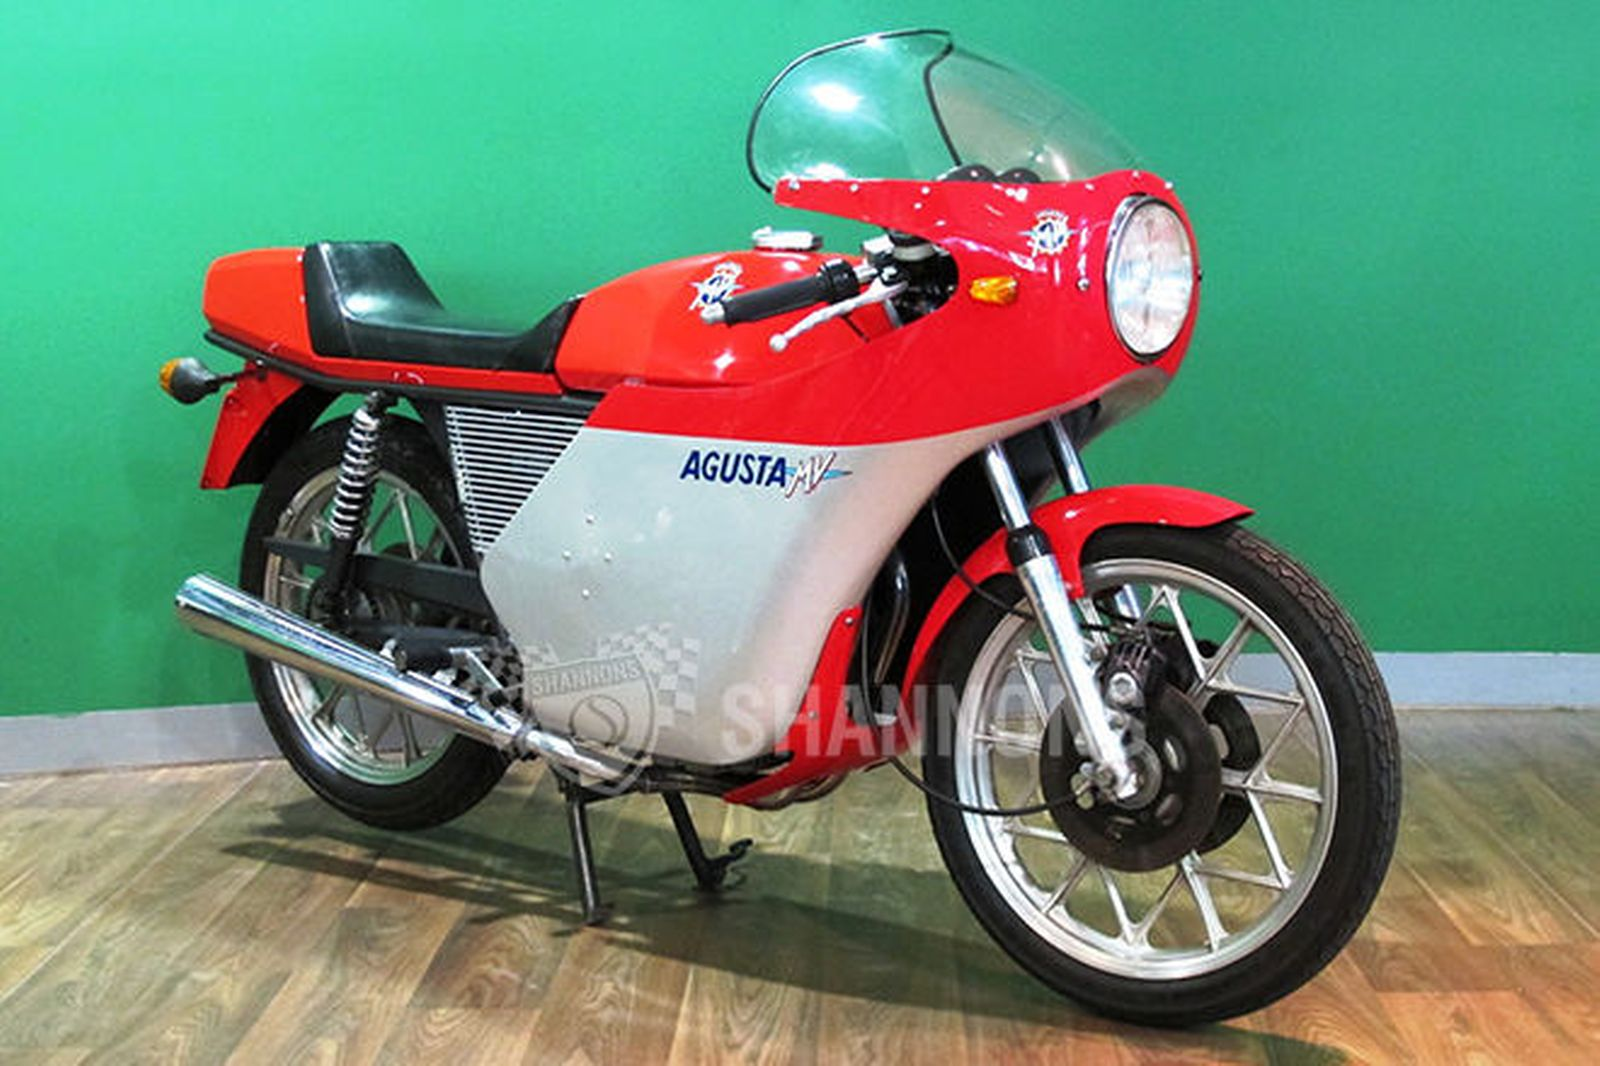 Mv agusta 350 photo - 8